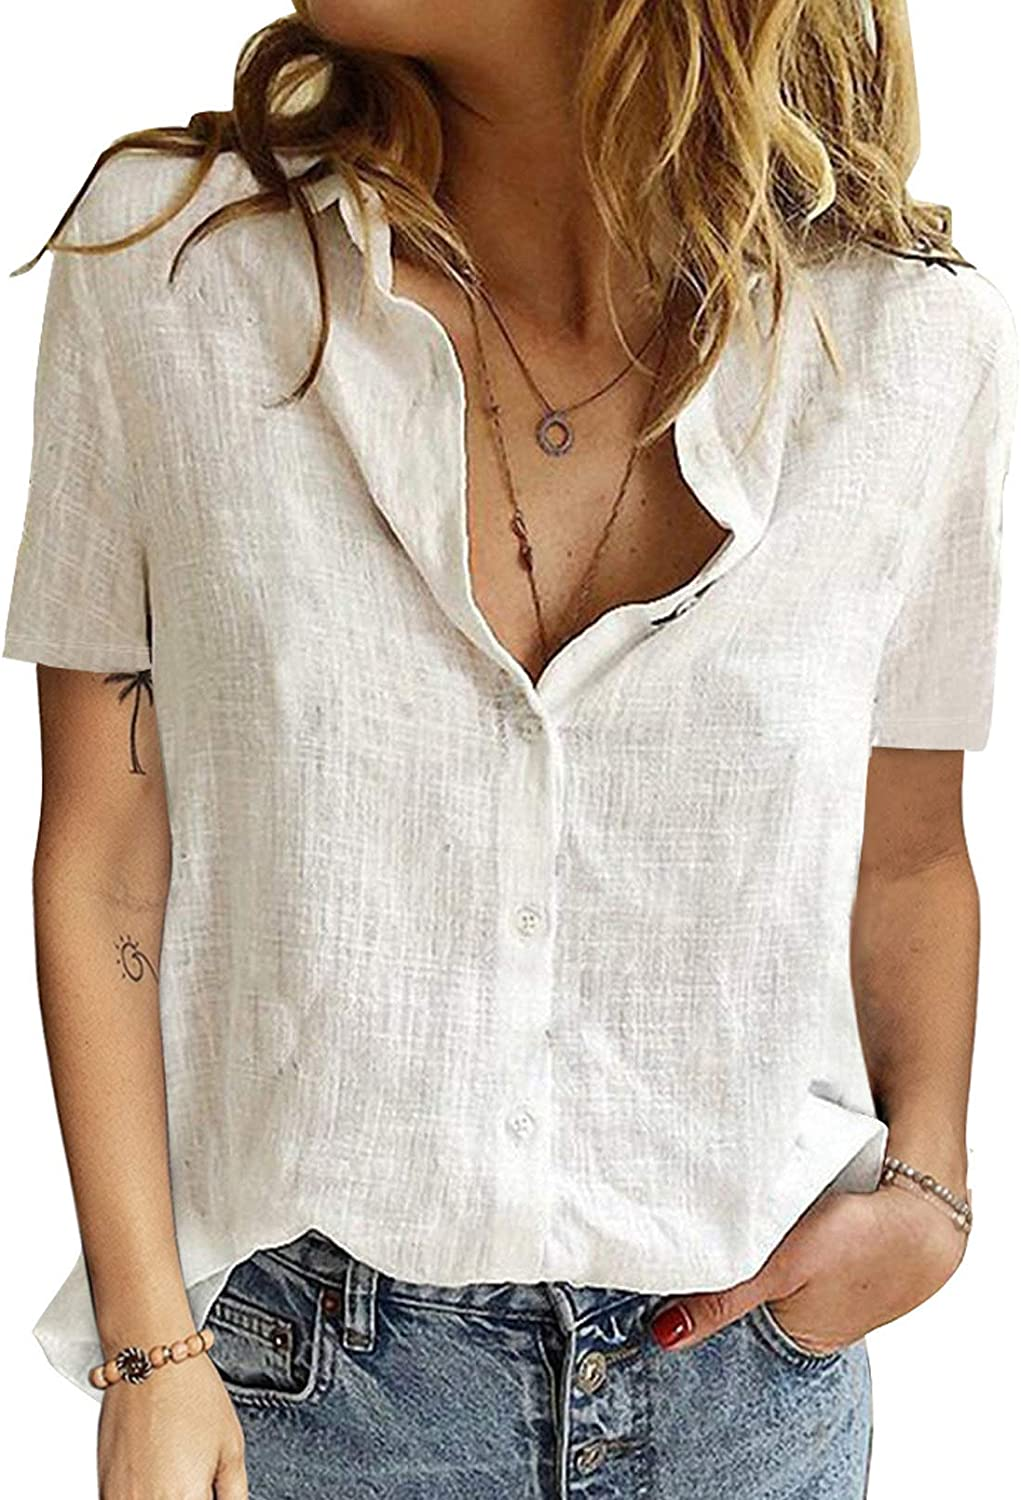 Dokotoo Blouses for Women Casual V Neck Solid Color Chiffon Button-Down Shirts Tops